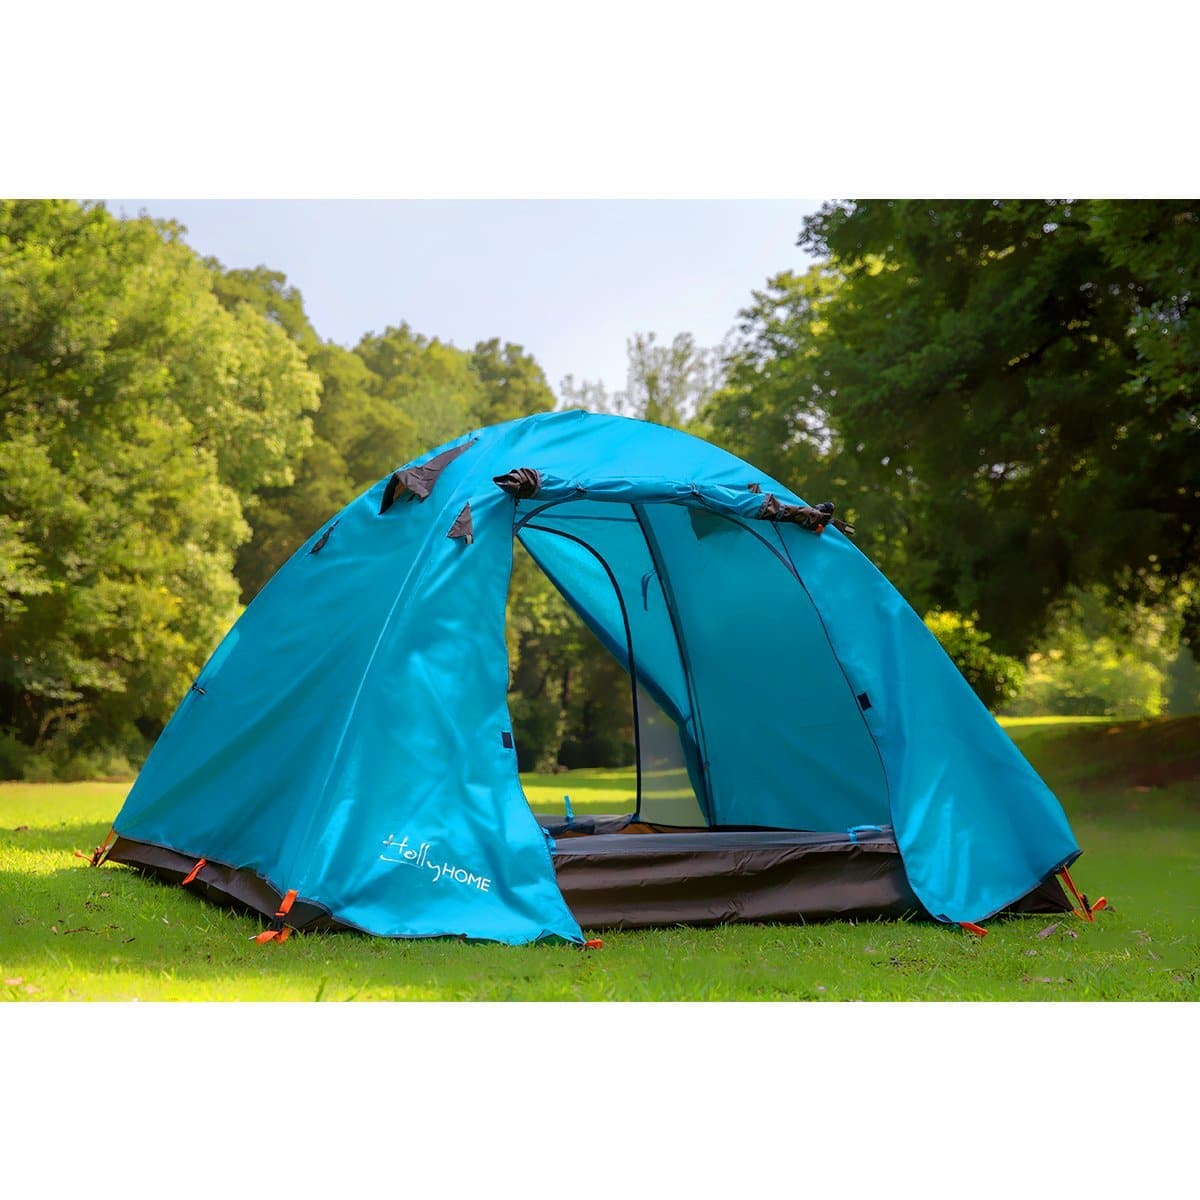 HollyHOME 3-4 Person Lighweight Backpacking Tent + Carrying Bag (Free Prime Shipping) $29.86